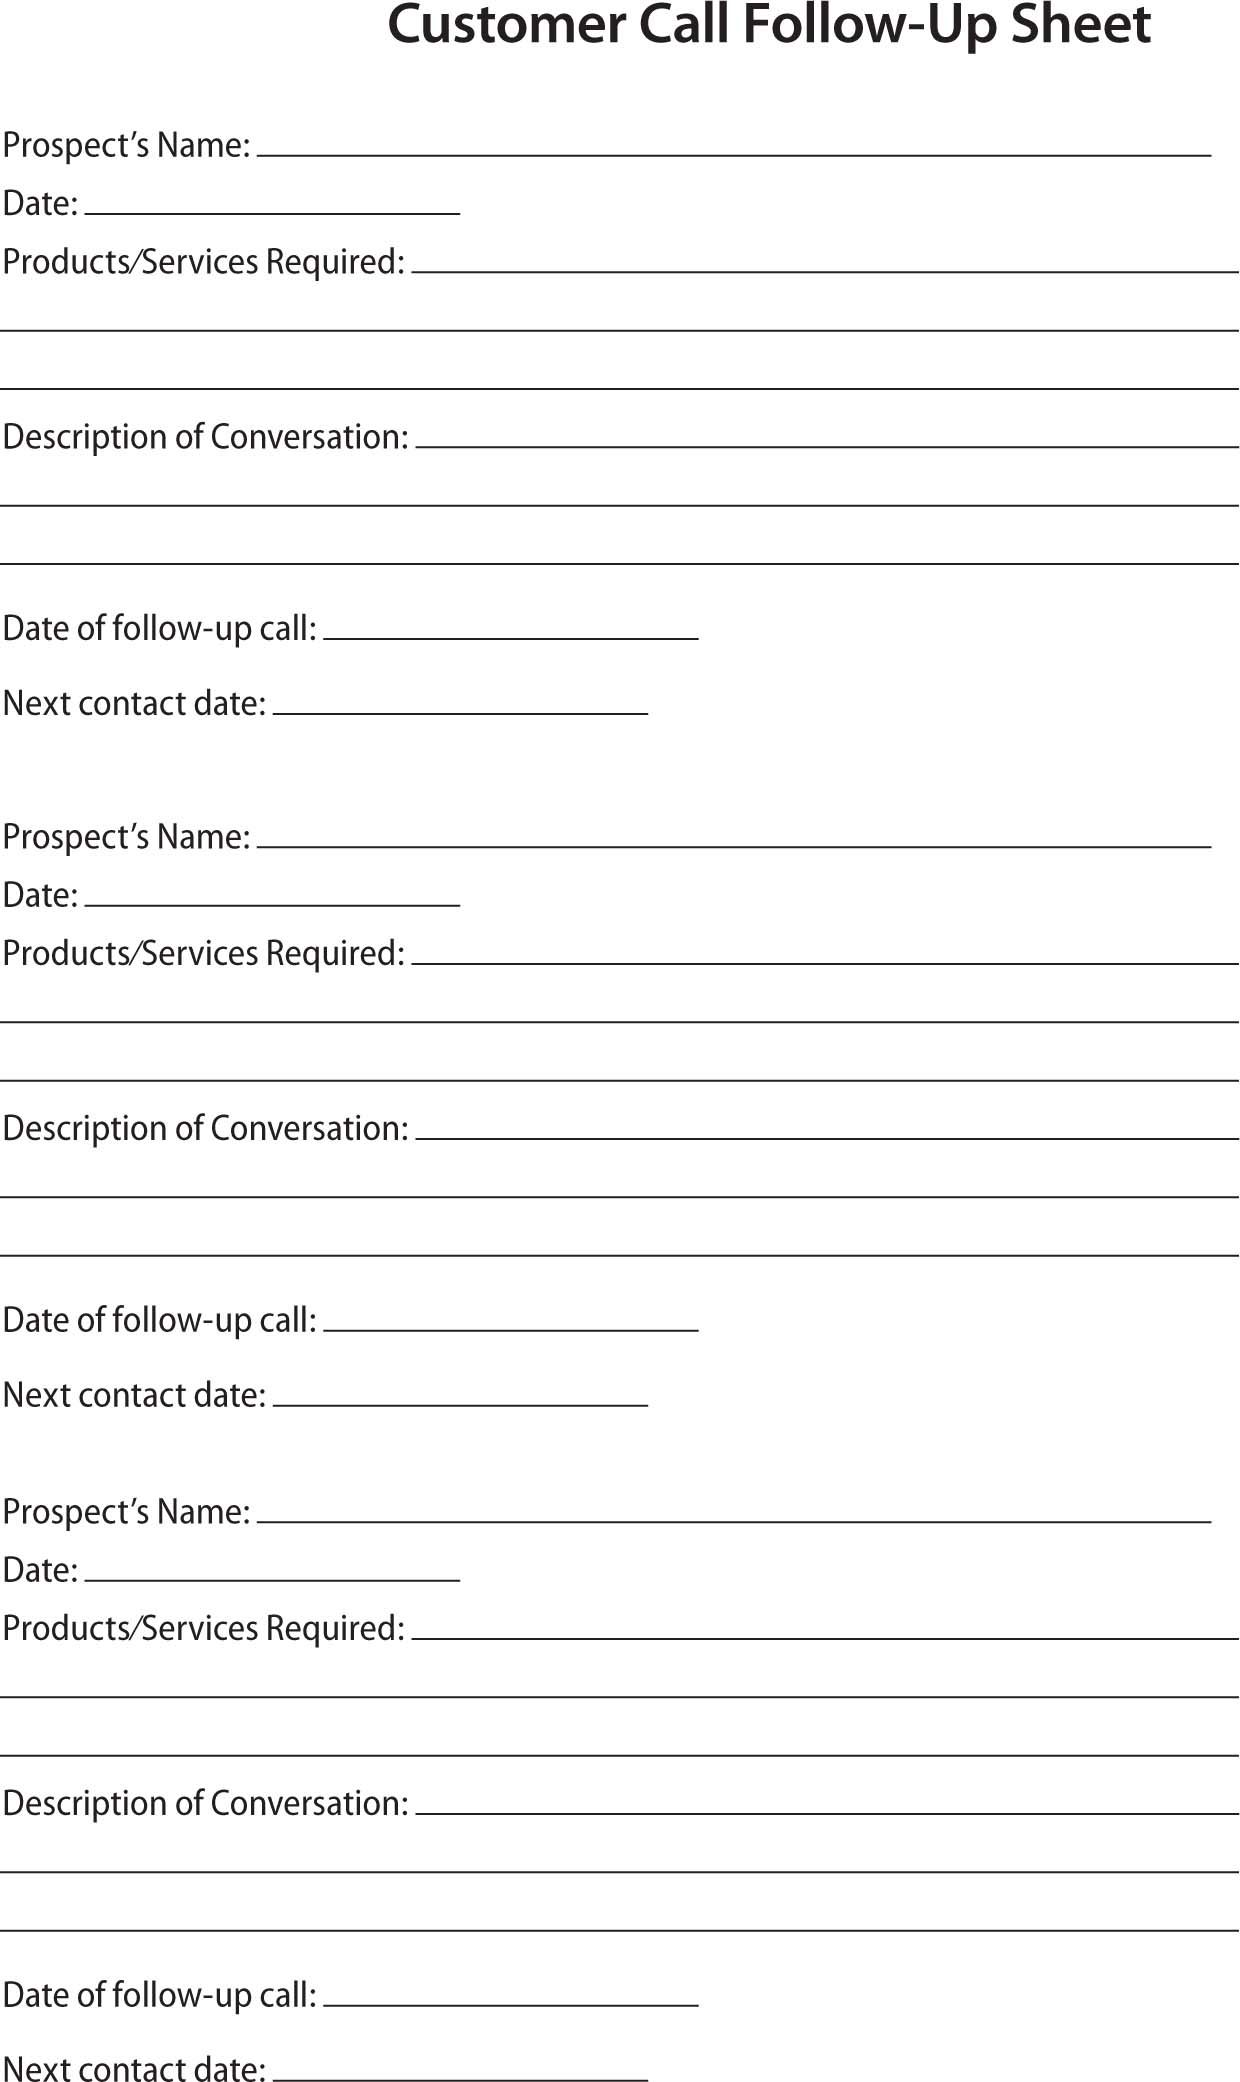 Sales Prospect Sheet Template